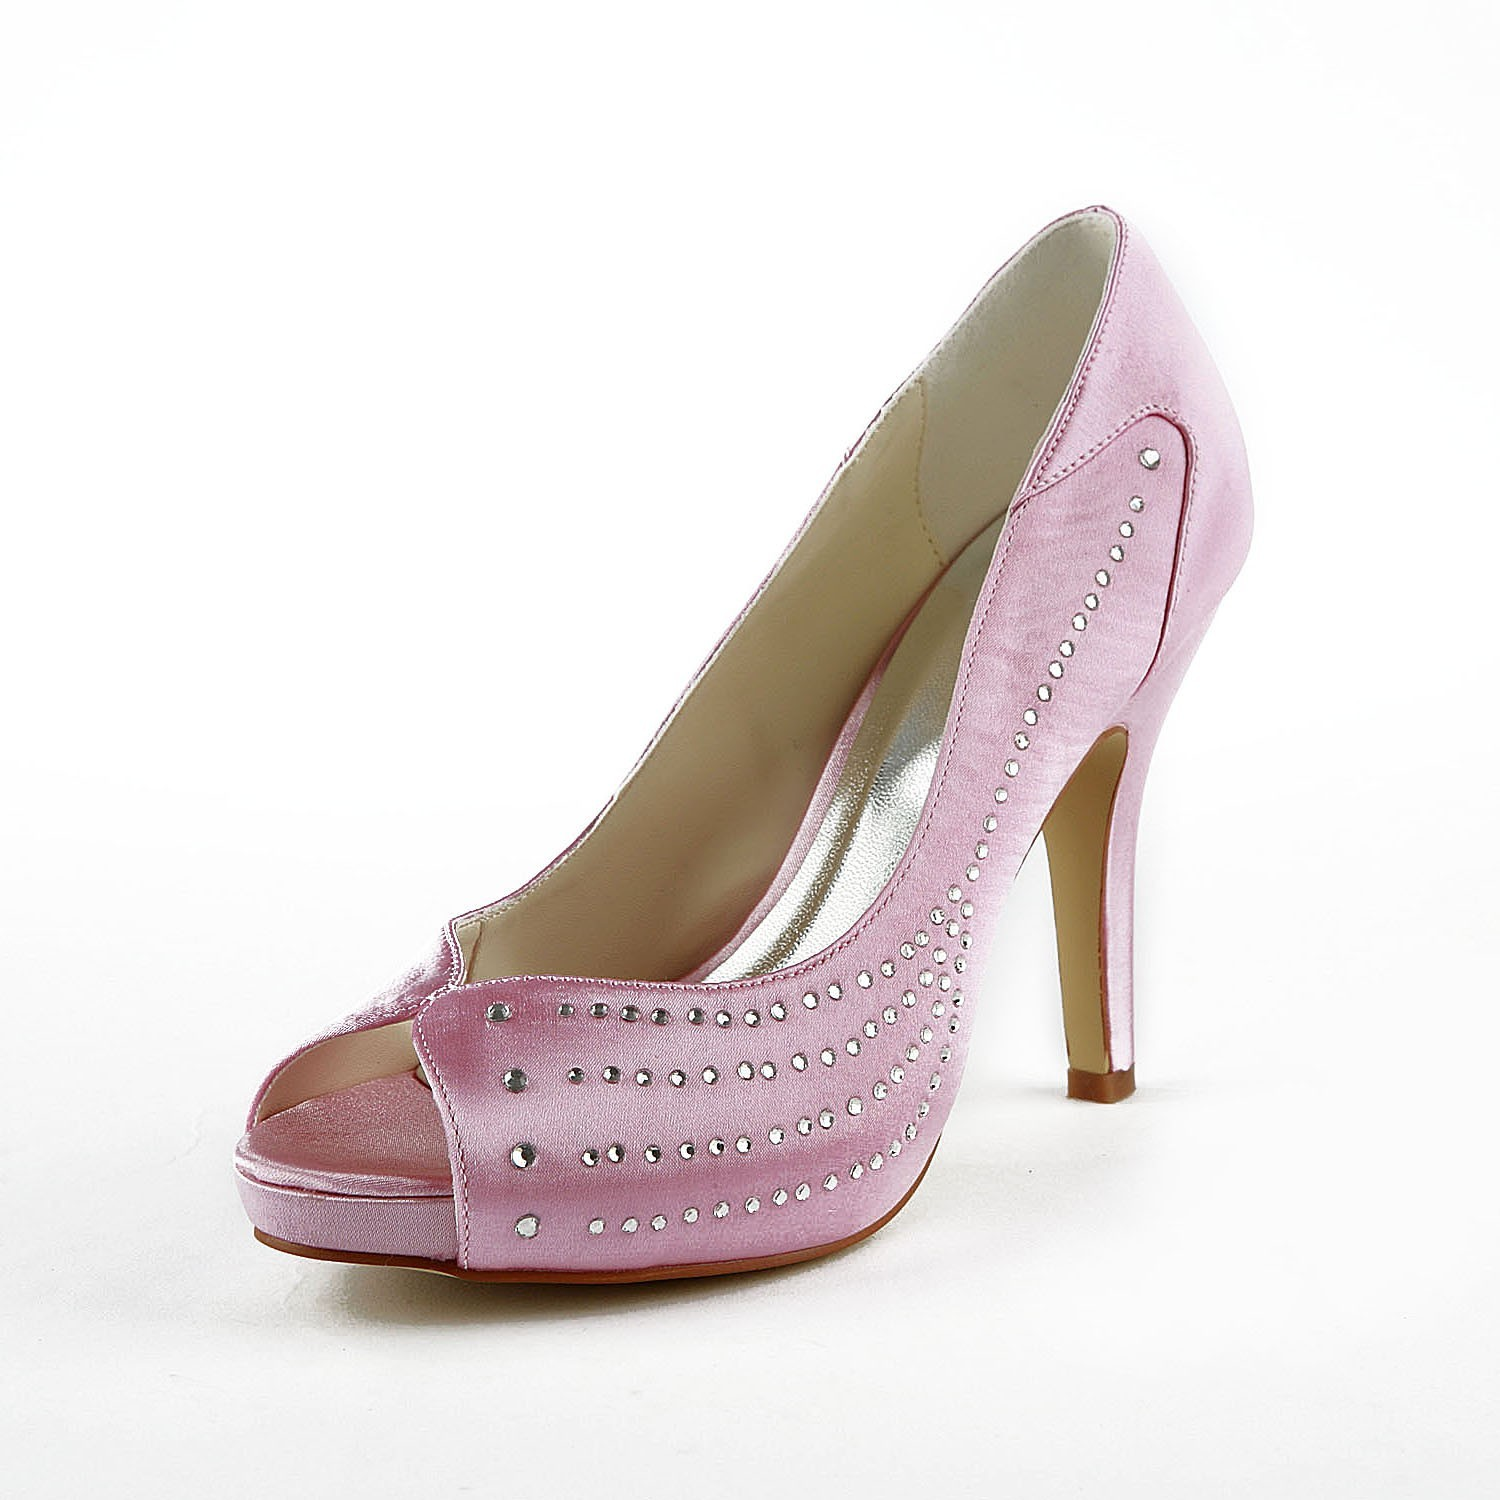 fea53d8a1028 The Most Fashionable Women s Satin Stiletto Heel Peep Toe Platform Pink  Wedding Shoes With Rhinestone